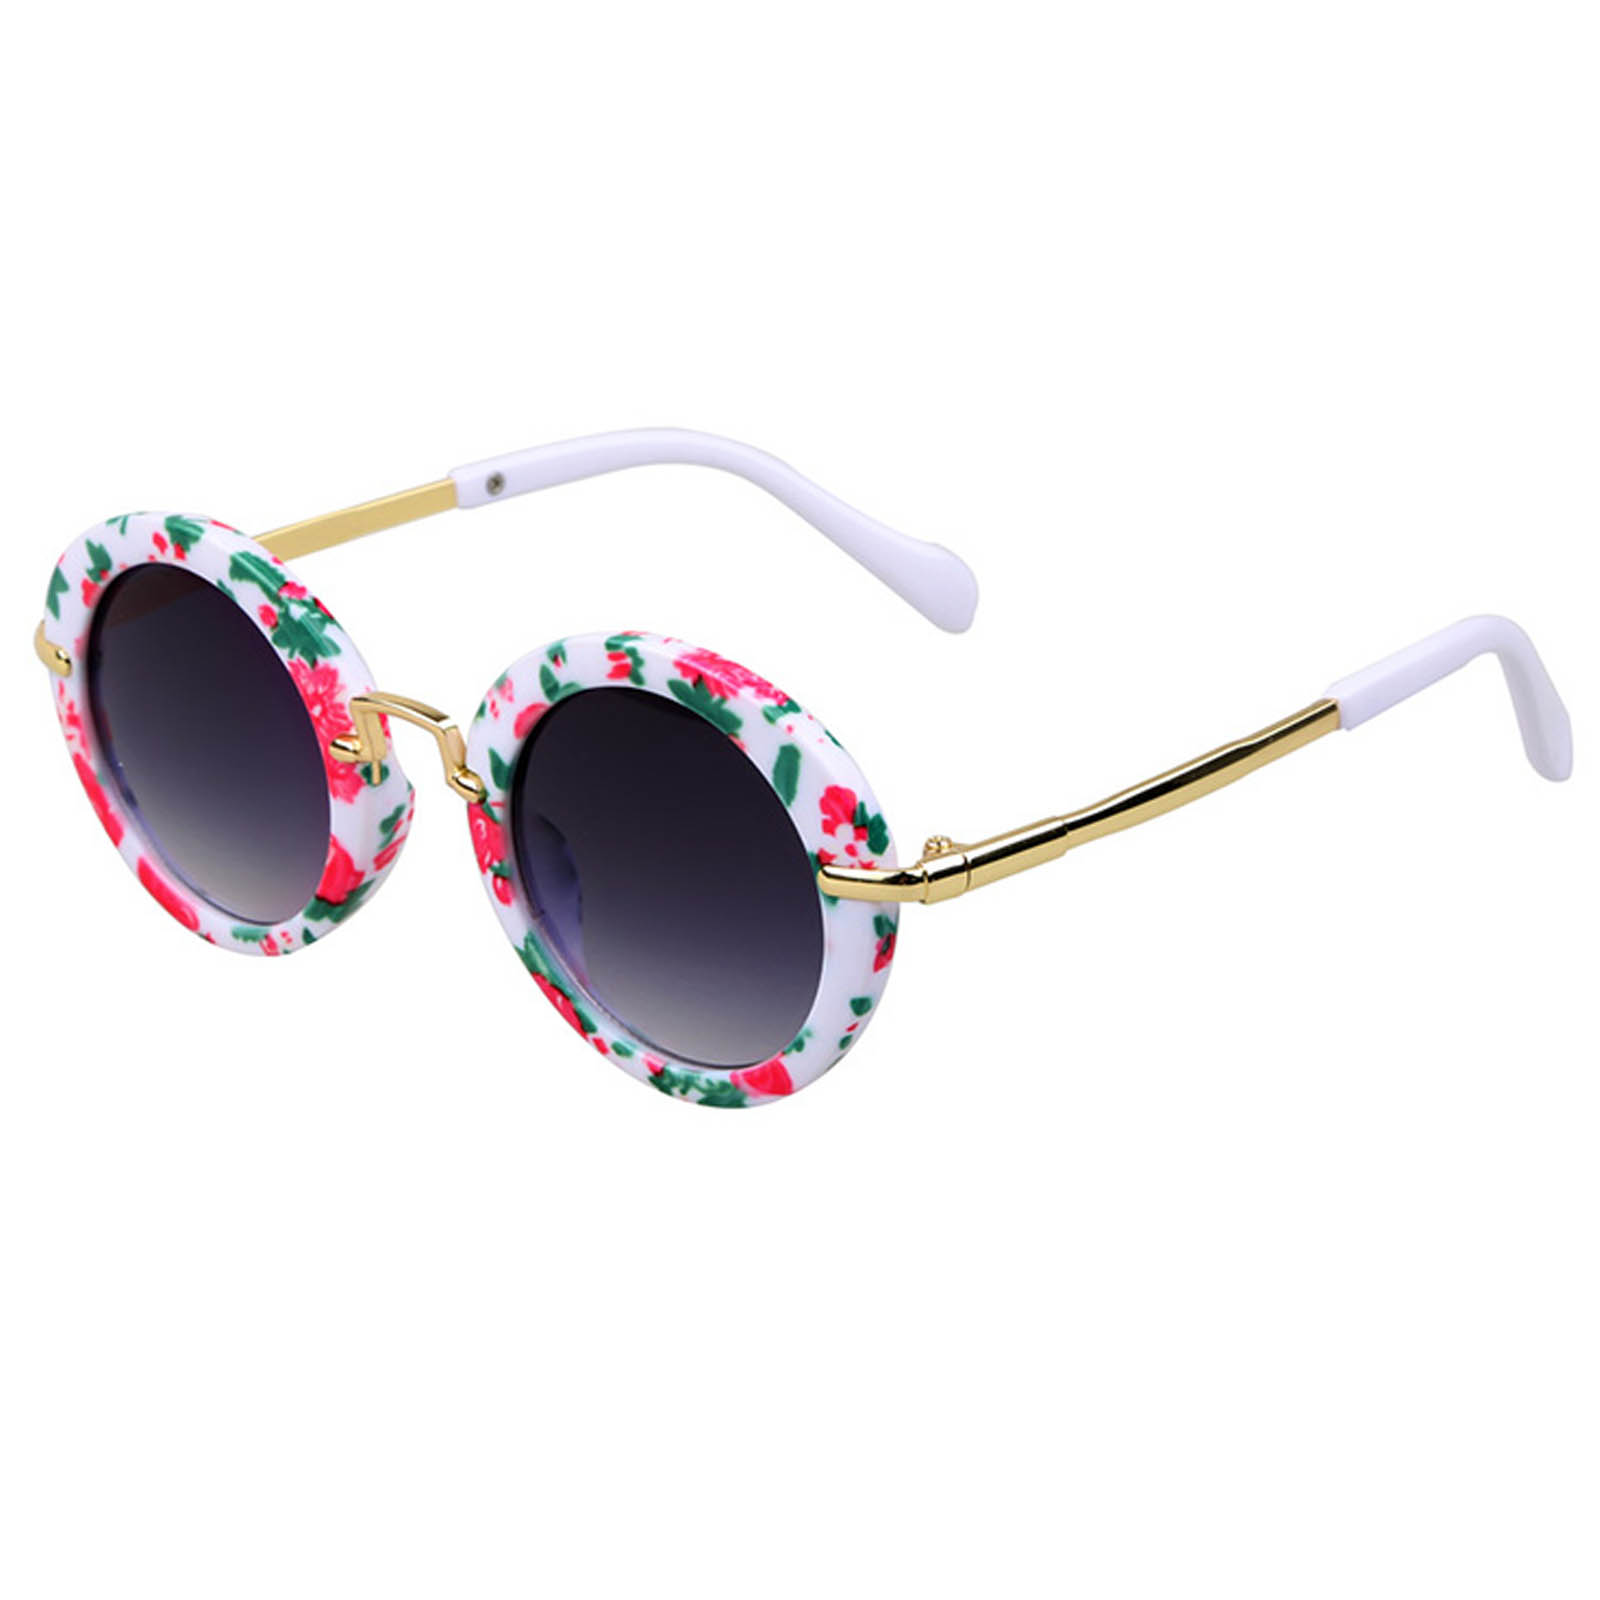 OWL ® 045 C3 Round Eyewear Sunglasses Women's Men's Metal Round Circle Flora Frame Smoke Lens One Pair